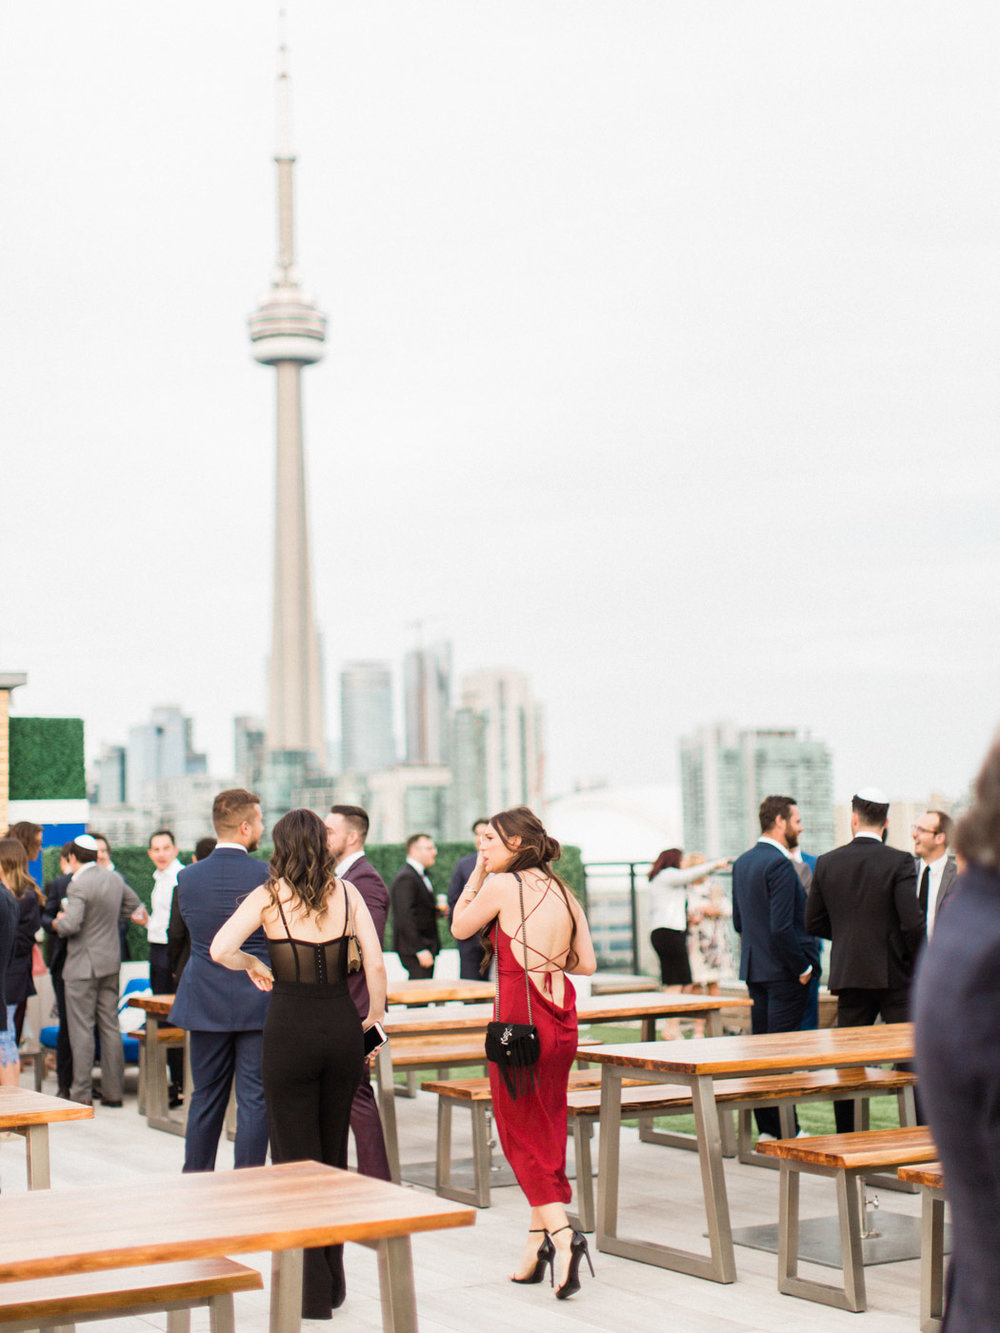 corynn-fowler-photography-toronto-wedding-photographer-restaurant-rooftop-lavelle-174.jpg